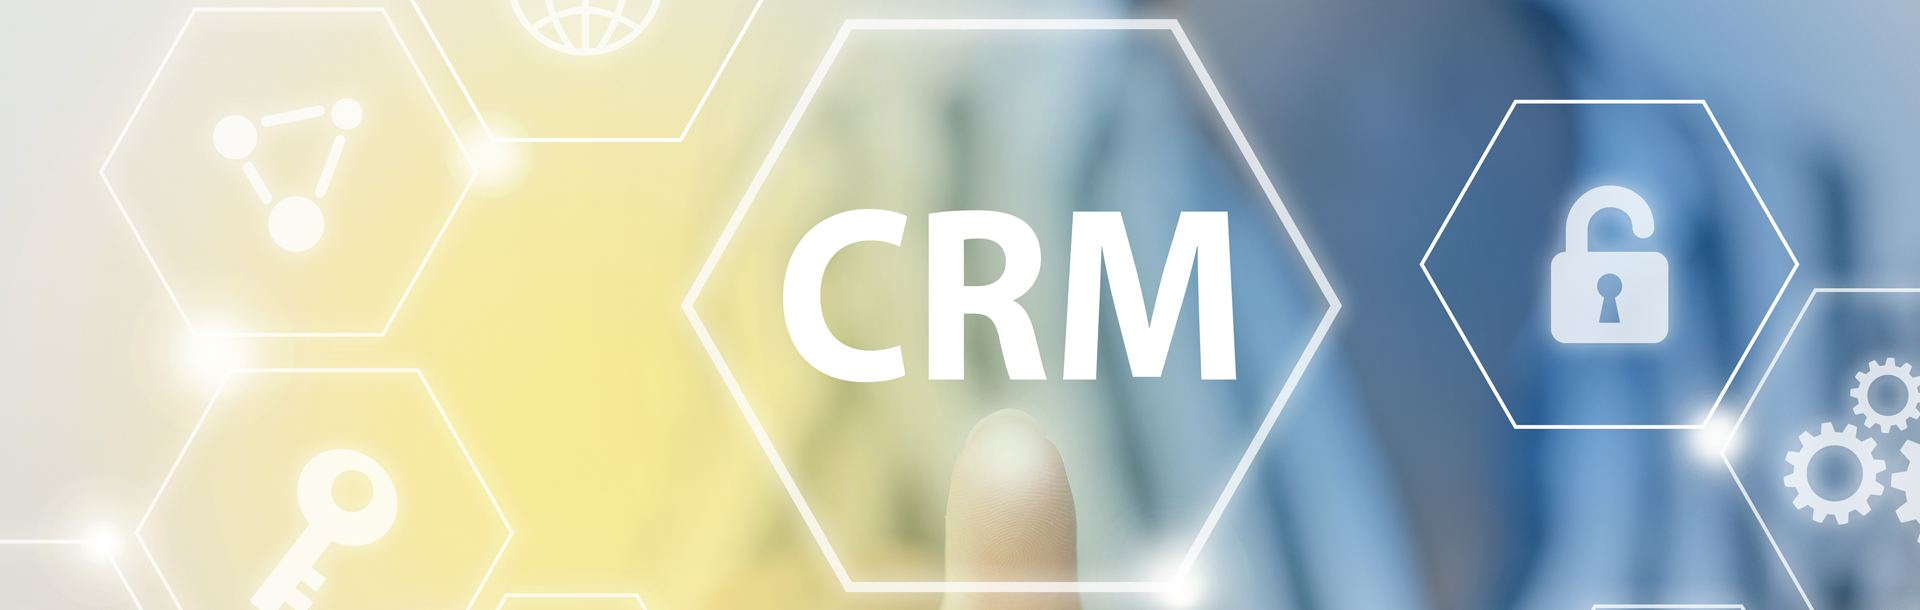 4 Awesome Ways CRM Can Accelerate Your Business Growth